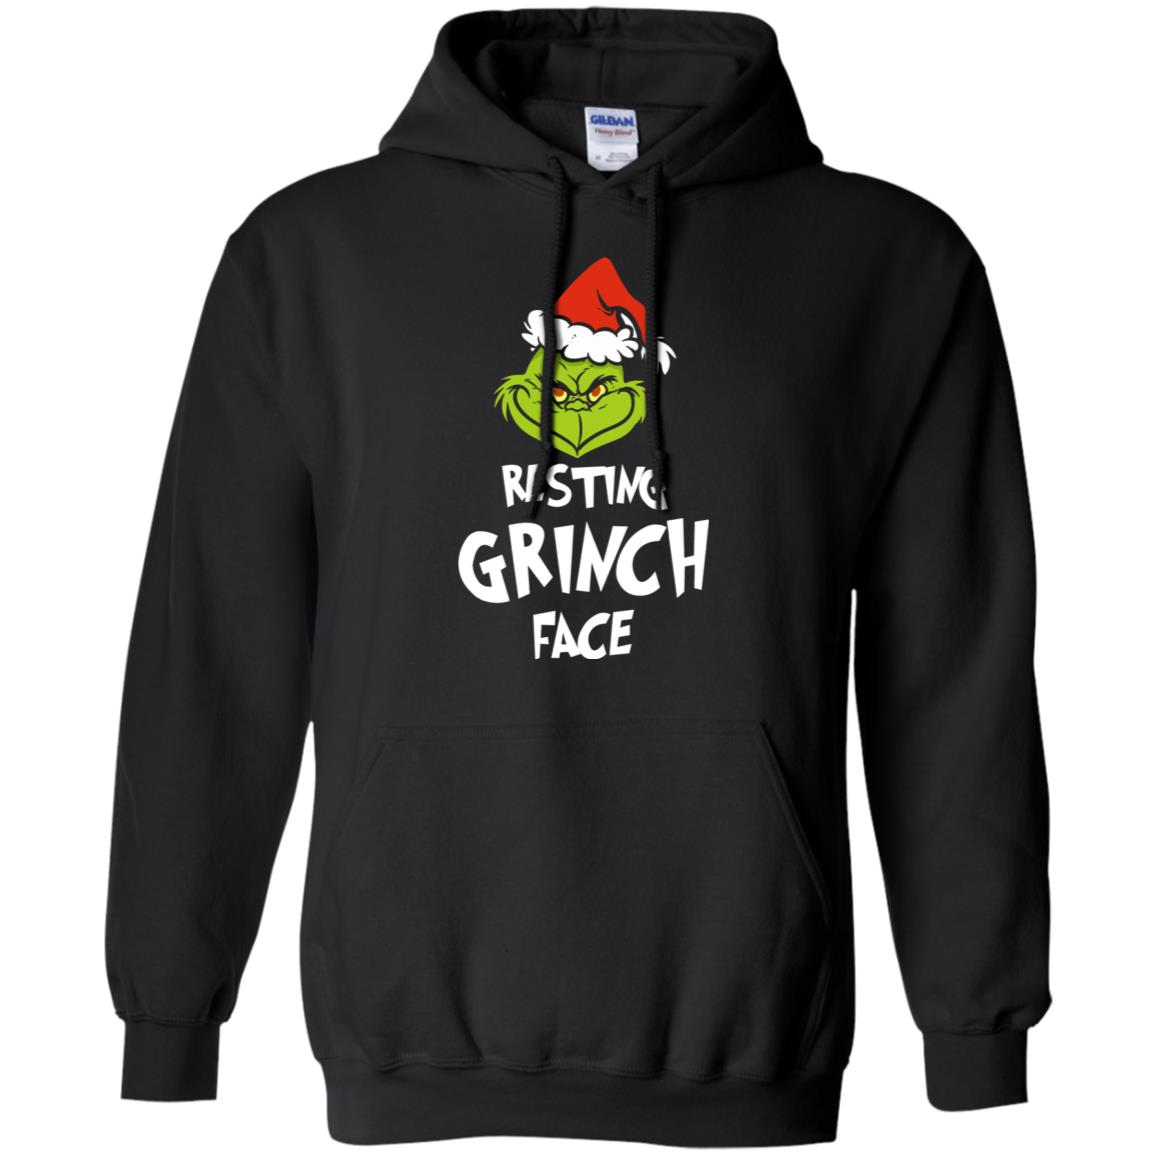 Grinch Christmas Sweater.Resting Grinch Face Mr Grinch Christmas Sweater